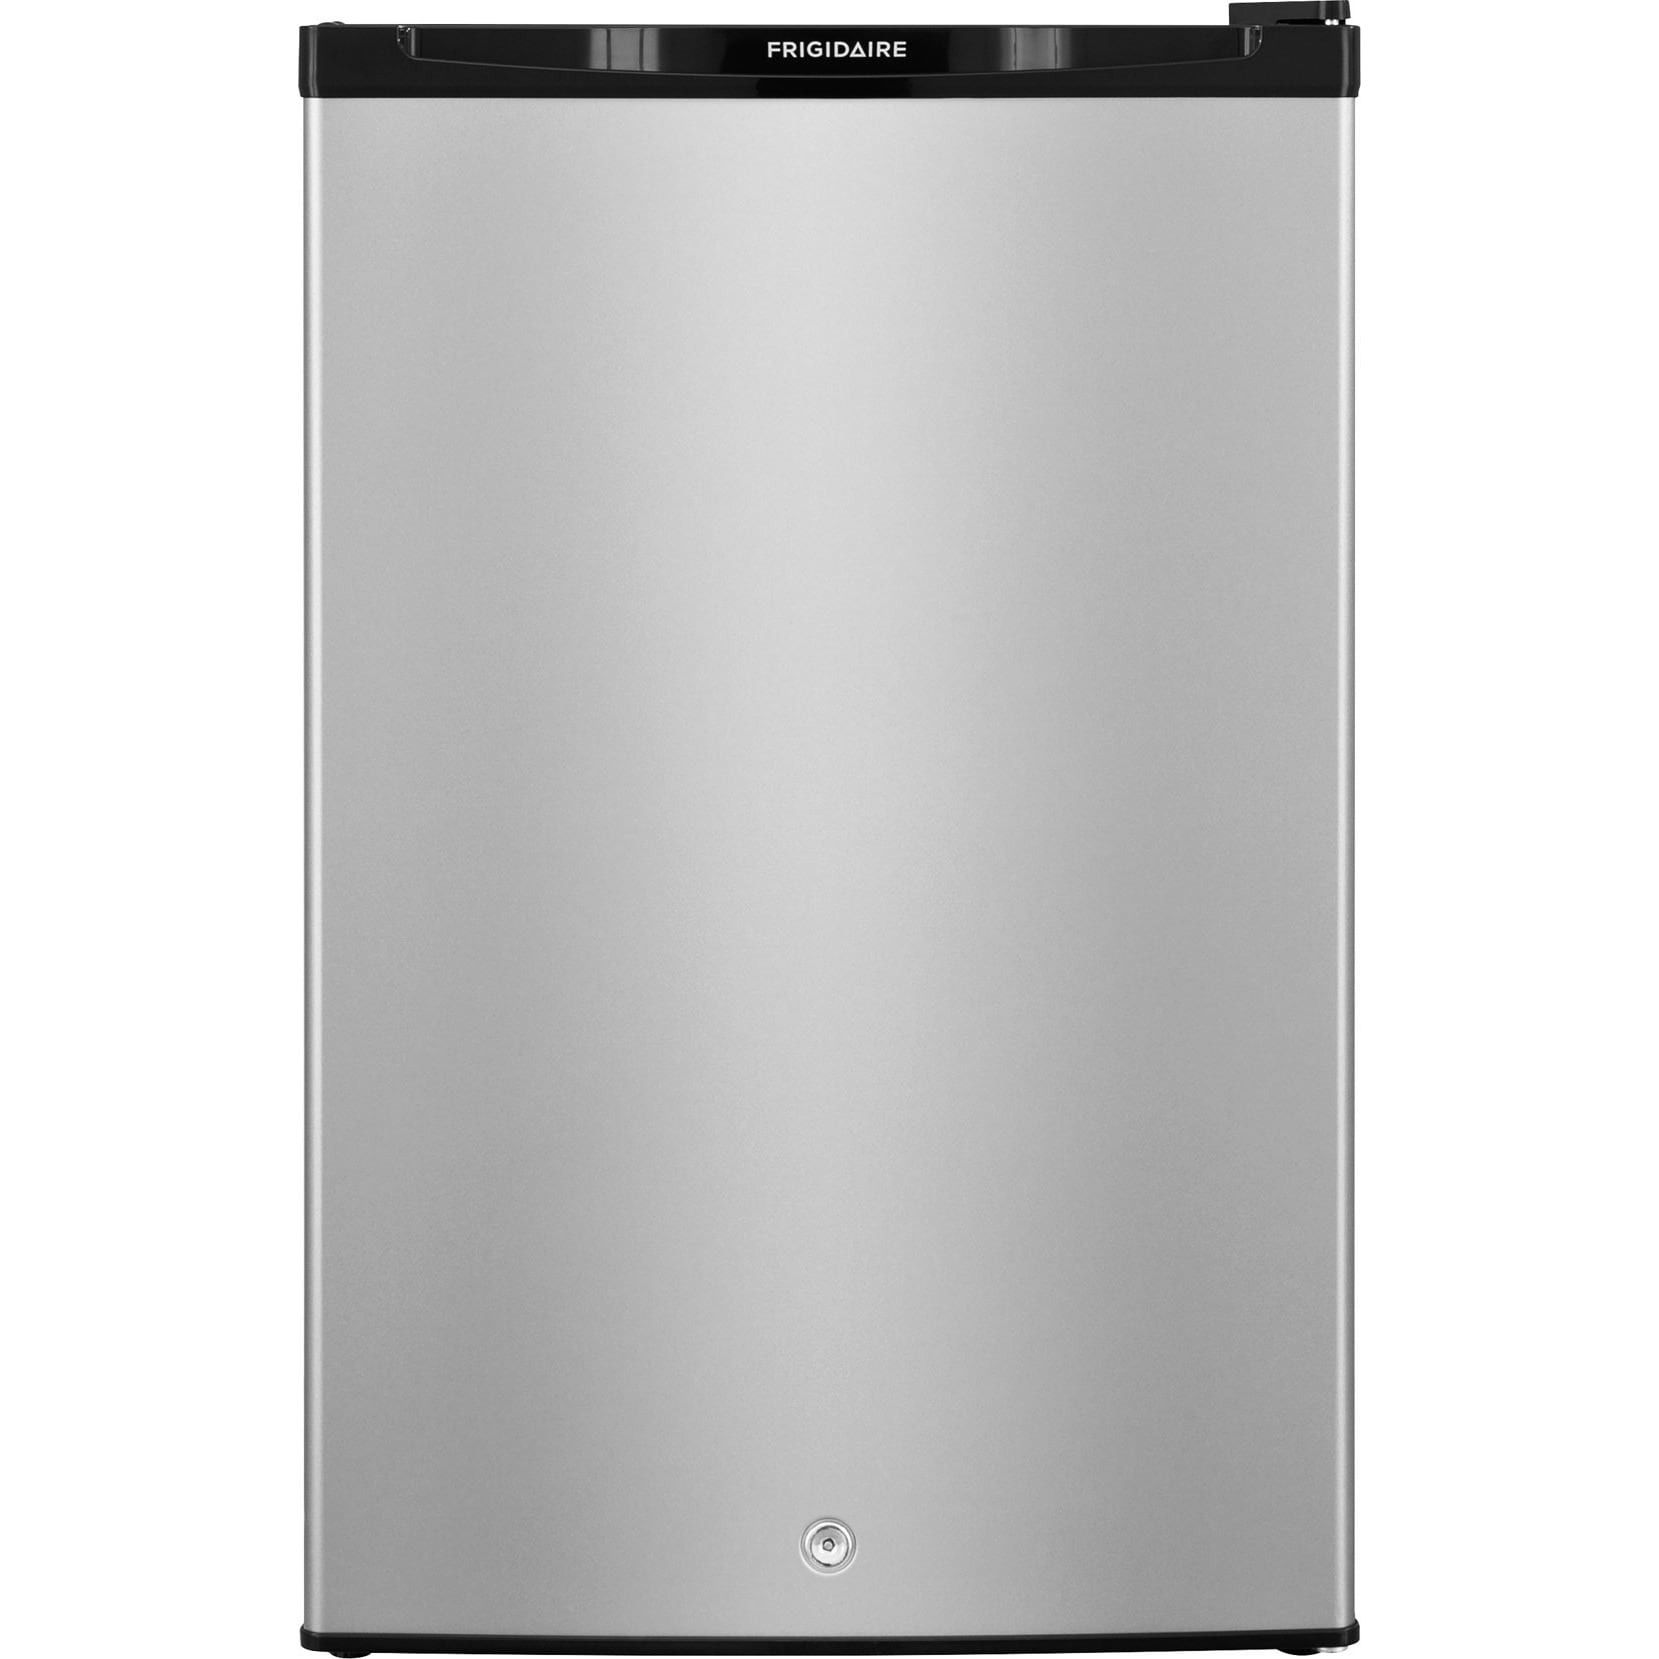 "Frigidaire FFPE4522QM 22"" Energy Star Rated Compact Refri..."